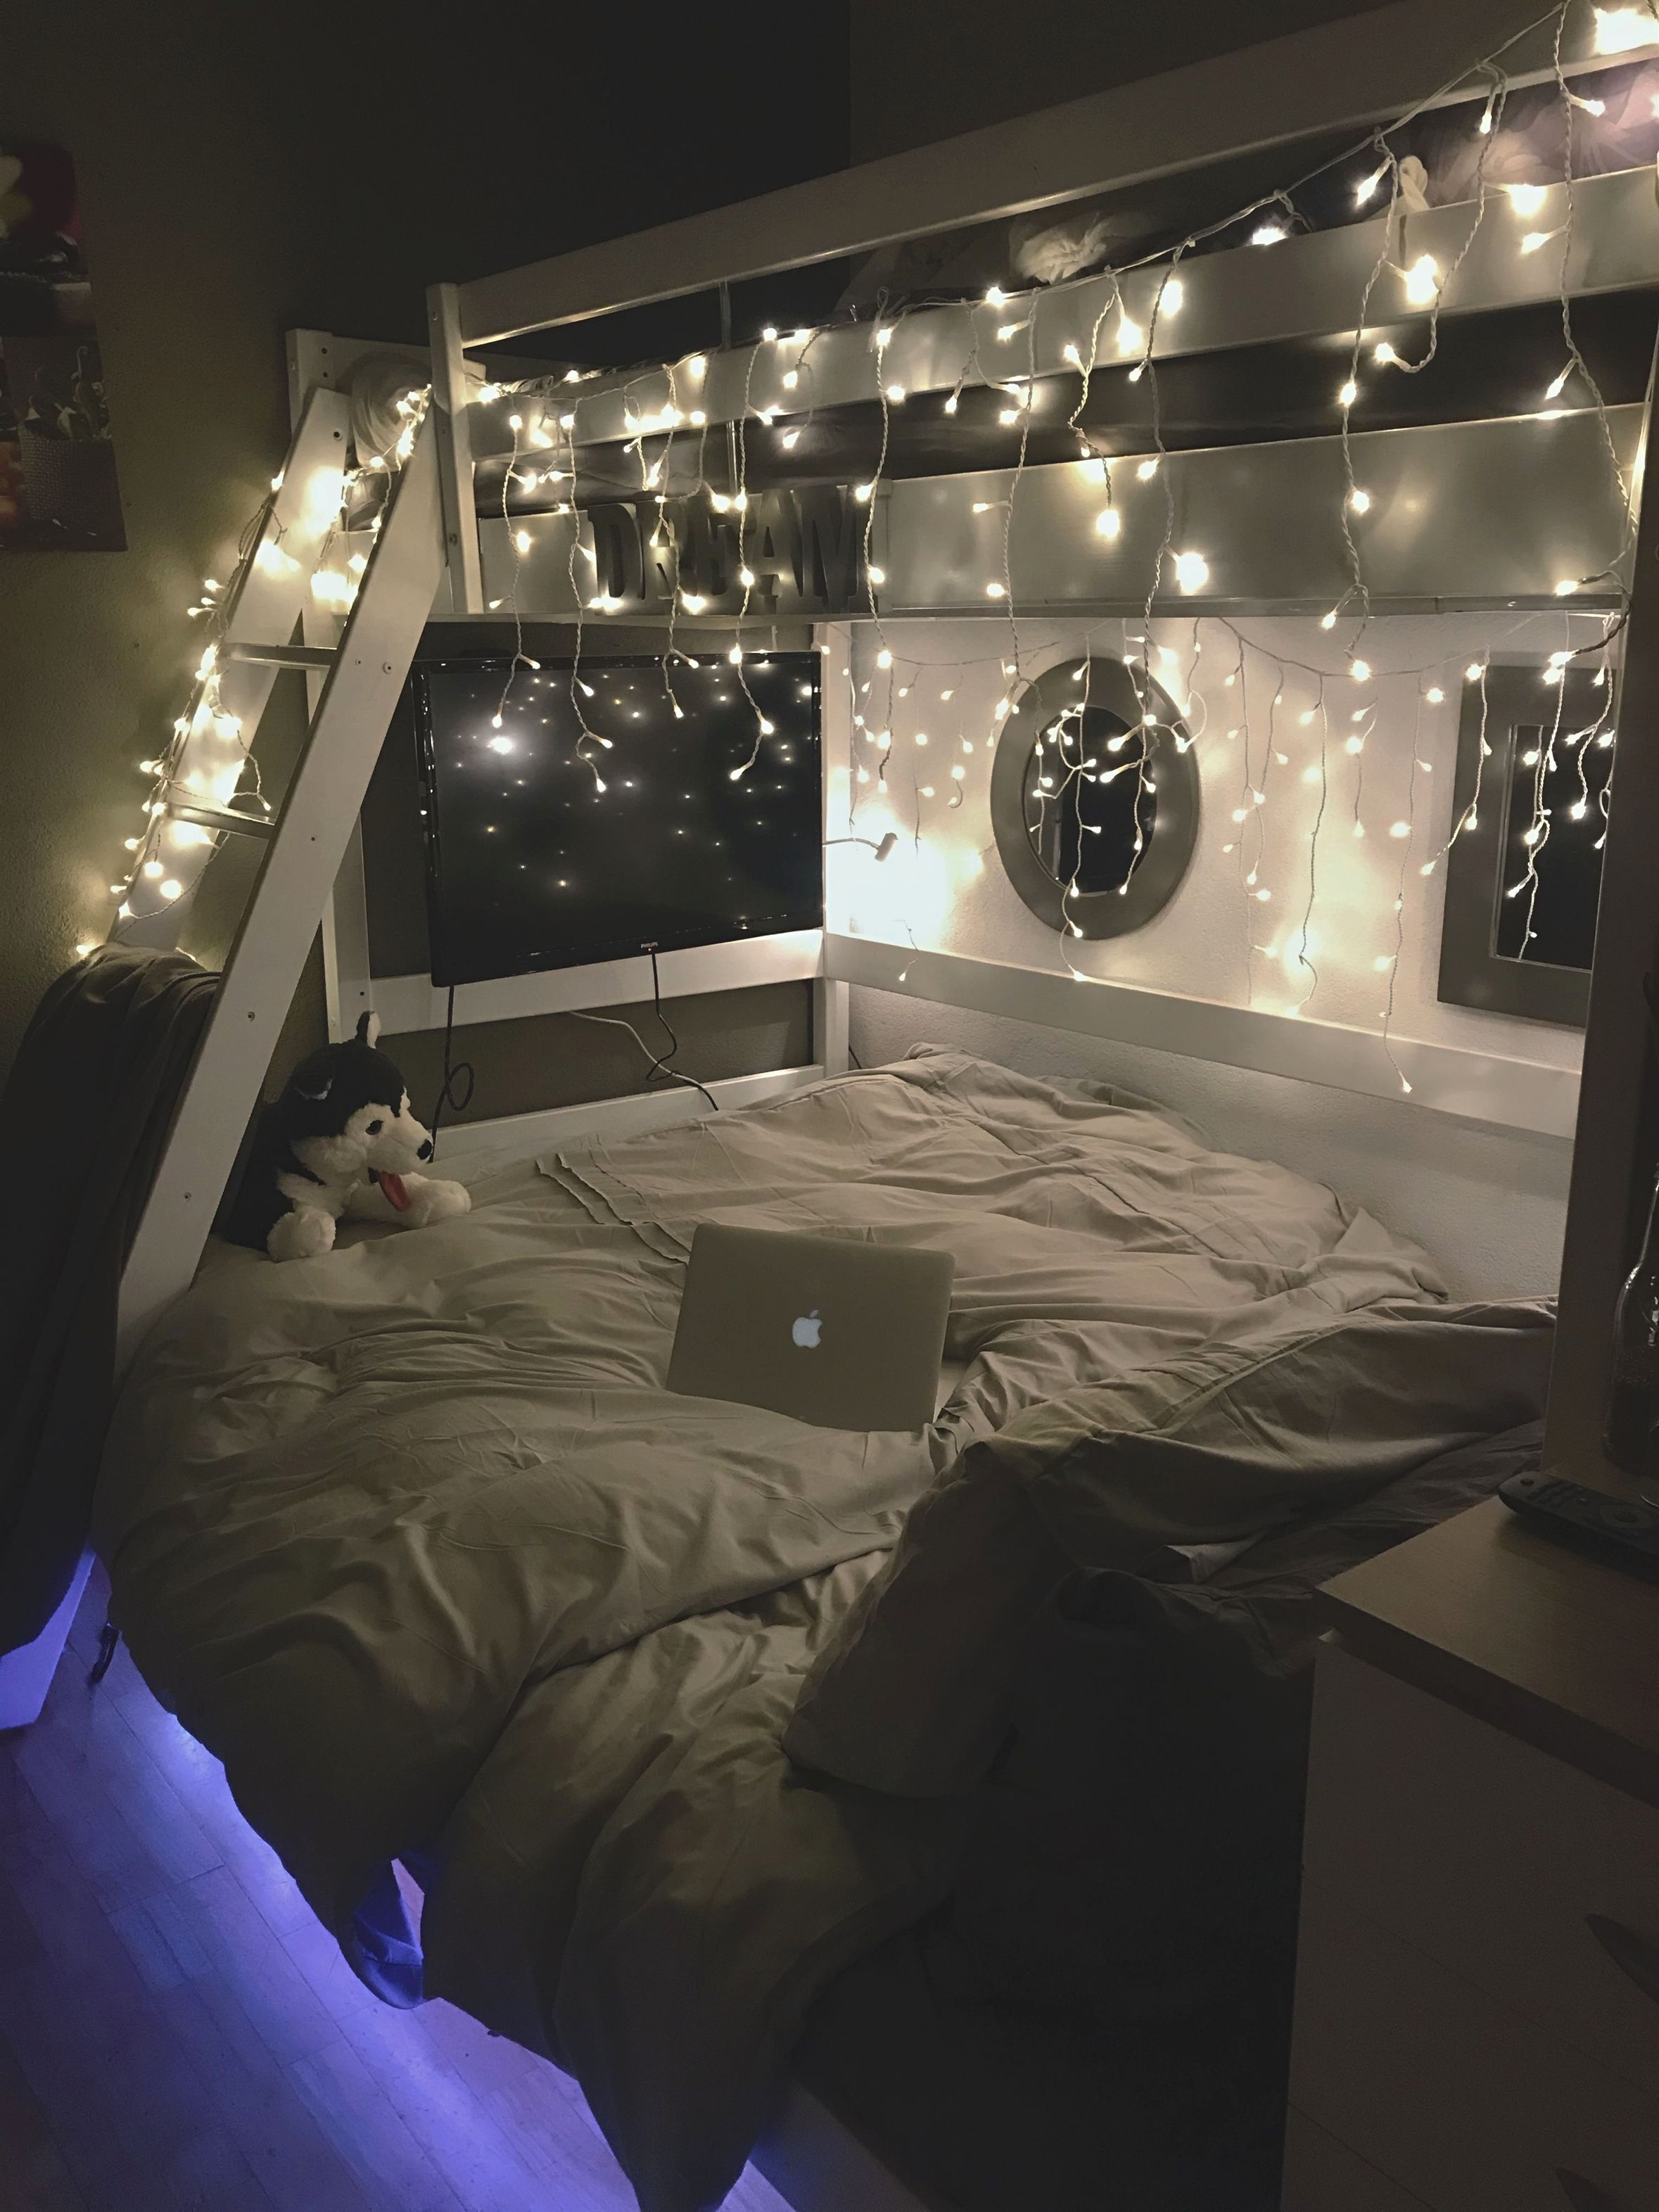 27 Girls Bedroom Ideas Teenage For Small Space Realize Their Dreams Dream Rooms Bedroom Design Bedroom Interior Teenage bedroom lighting ideas